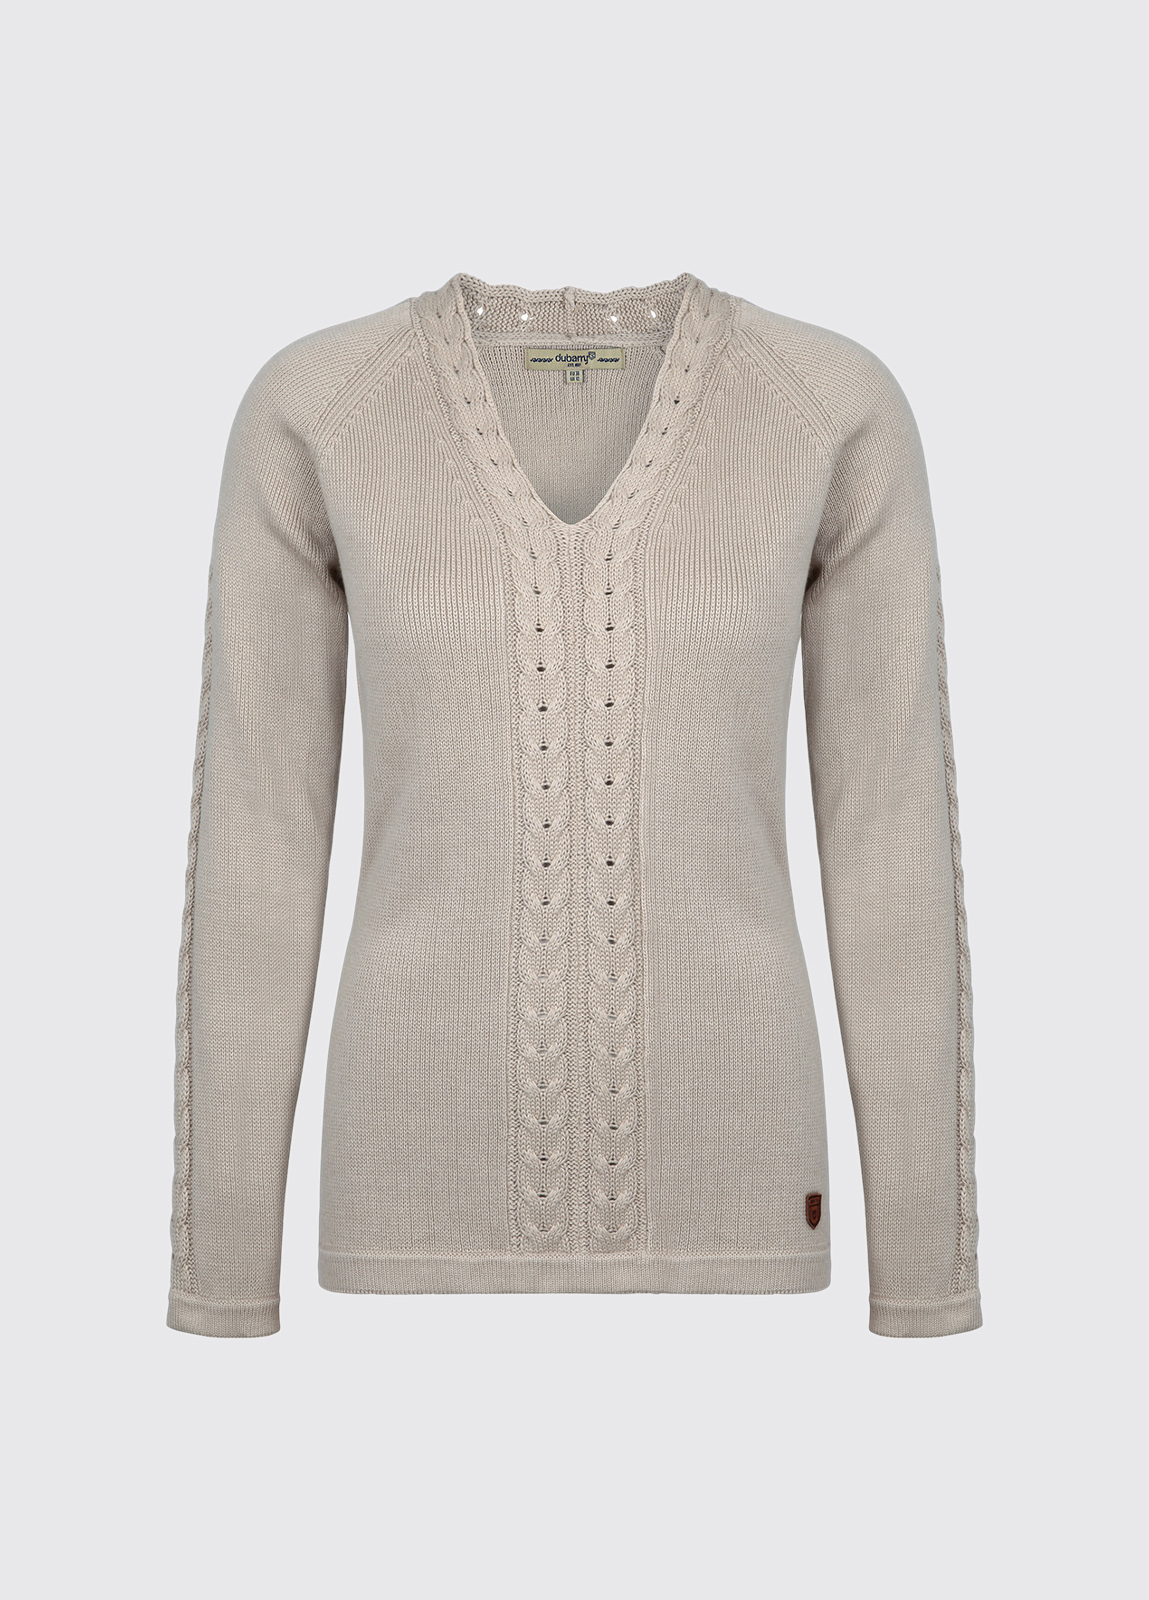 Carolan Women's V-neck Knitted Sweater - Sand